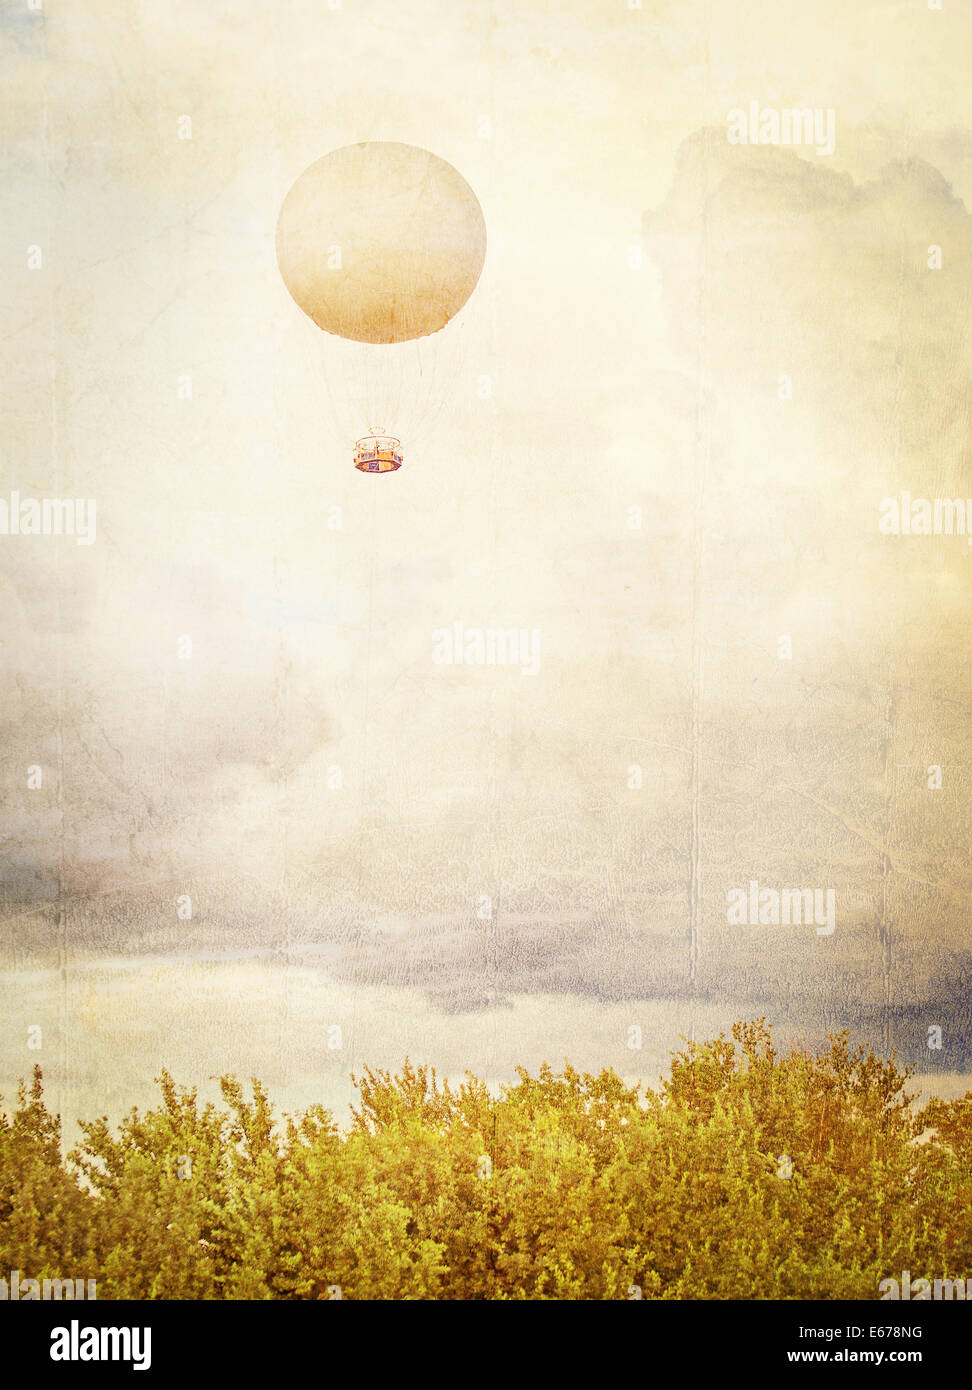 Vintage picture of Tethered aerostat balloon. Place for text. - Stock Image